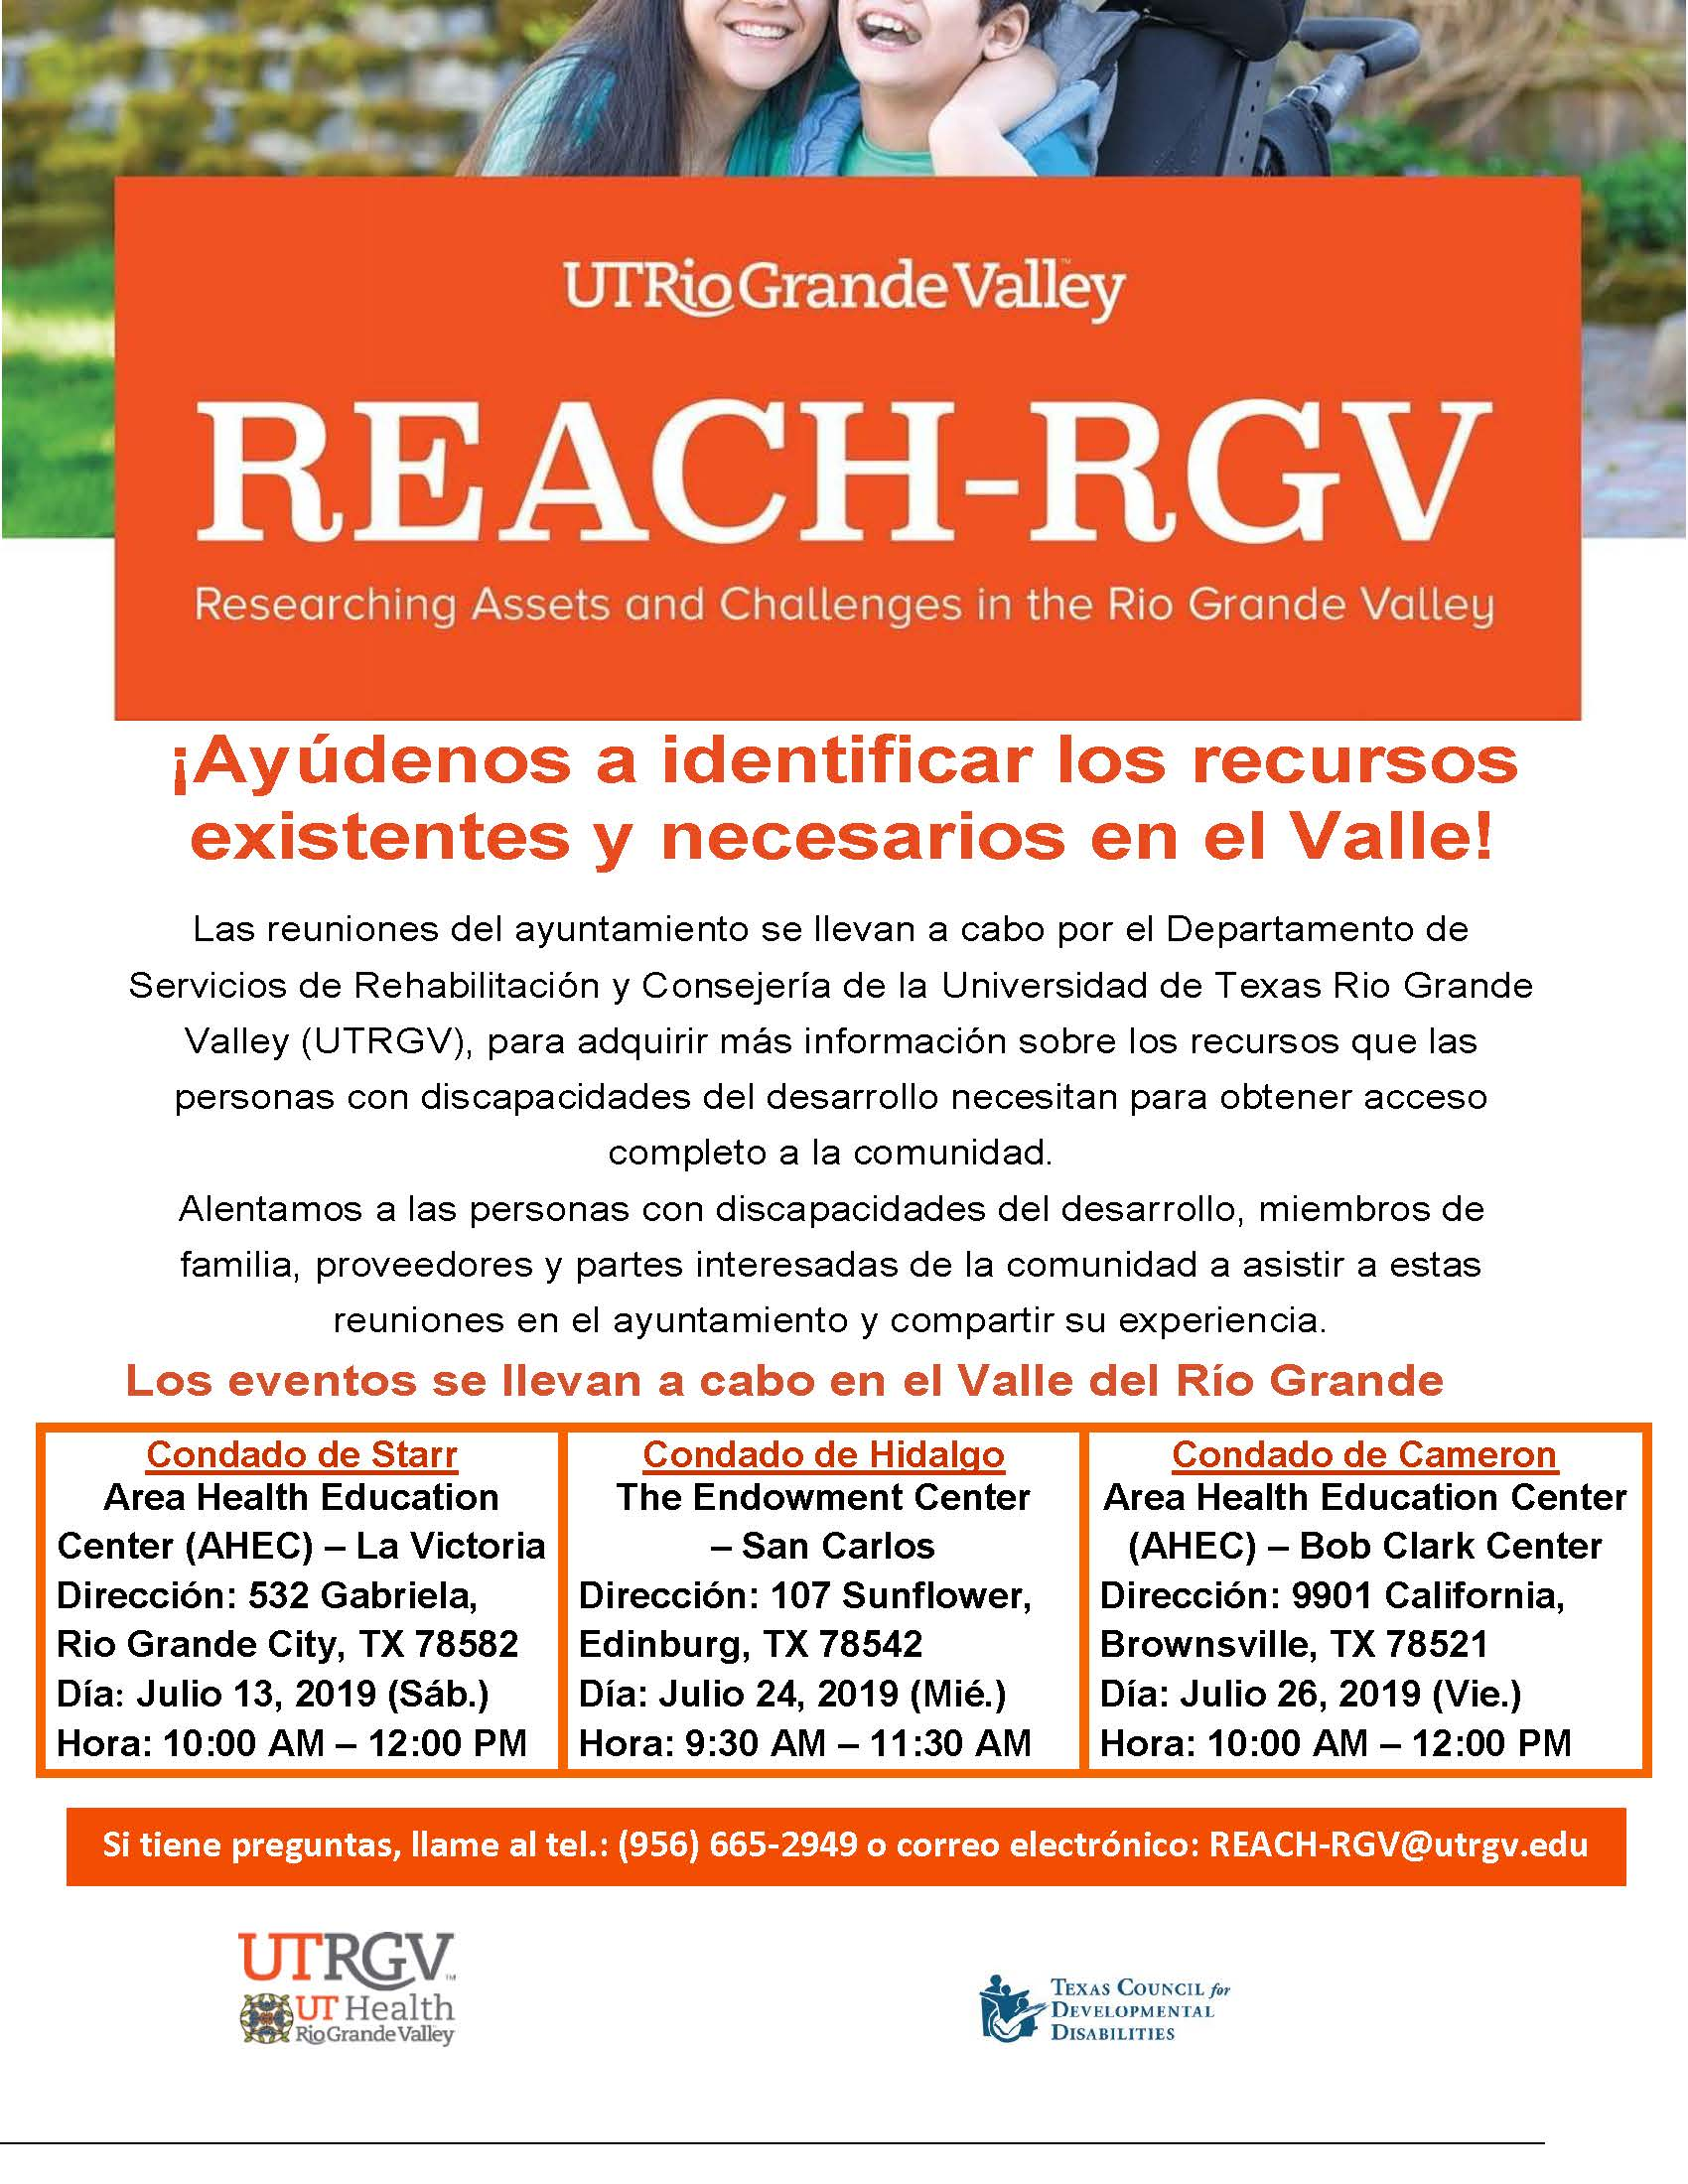 REACH RGV Flyer both english and spanish - July Event1_Page_2.jpg